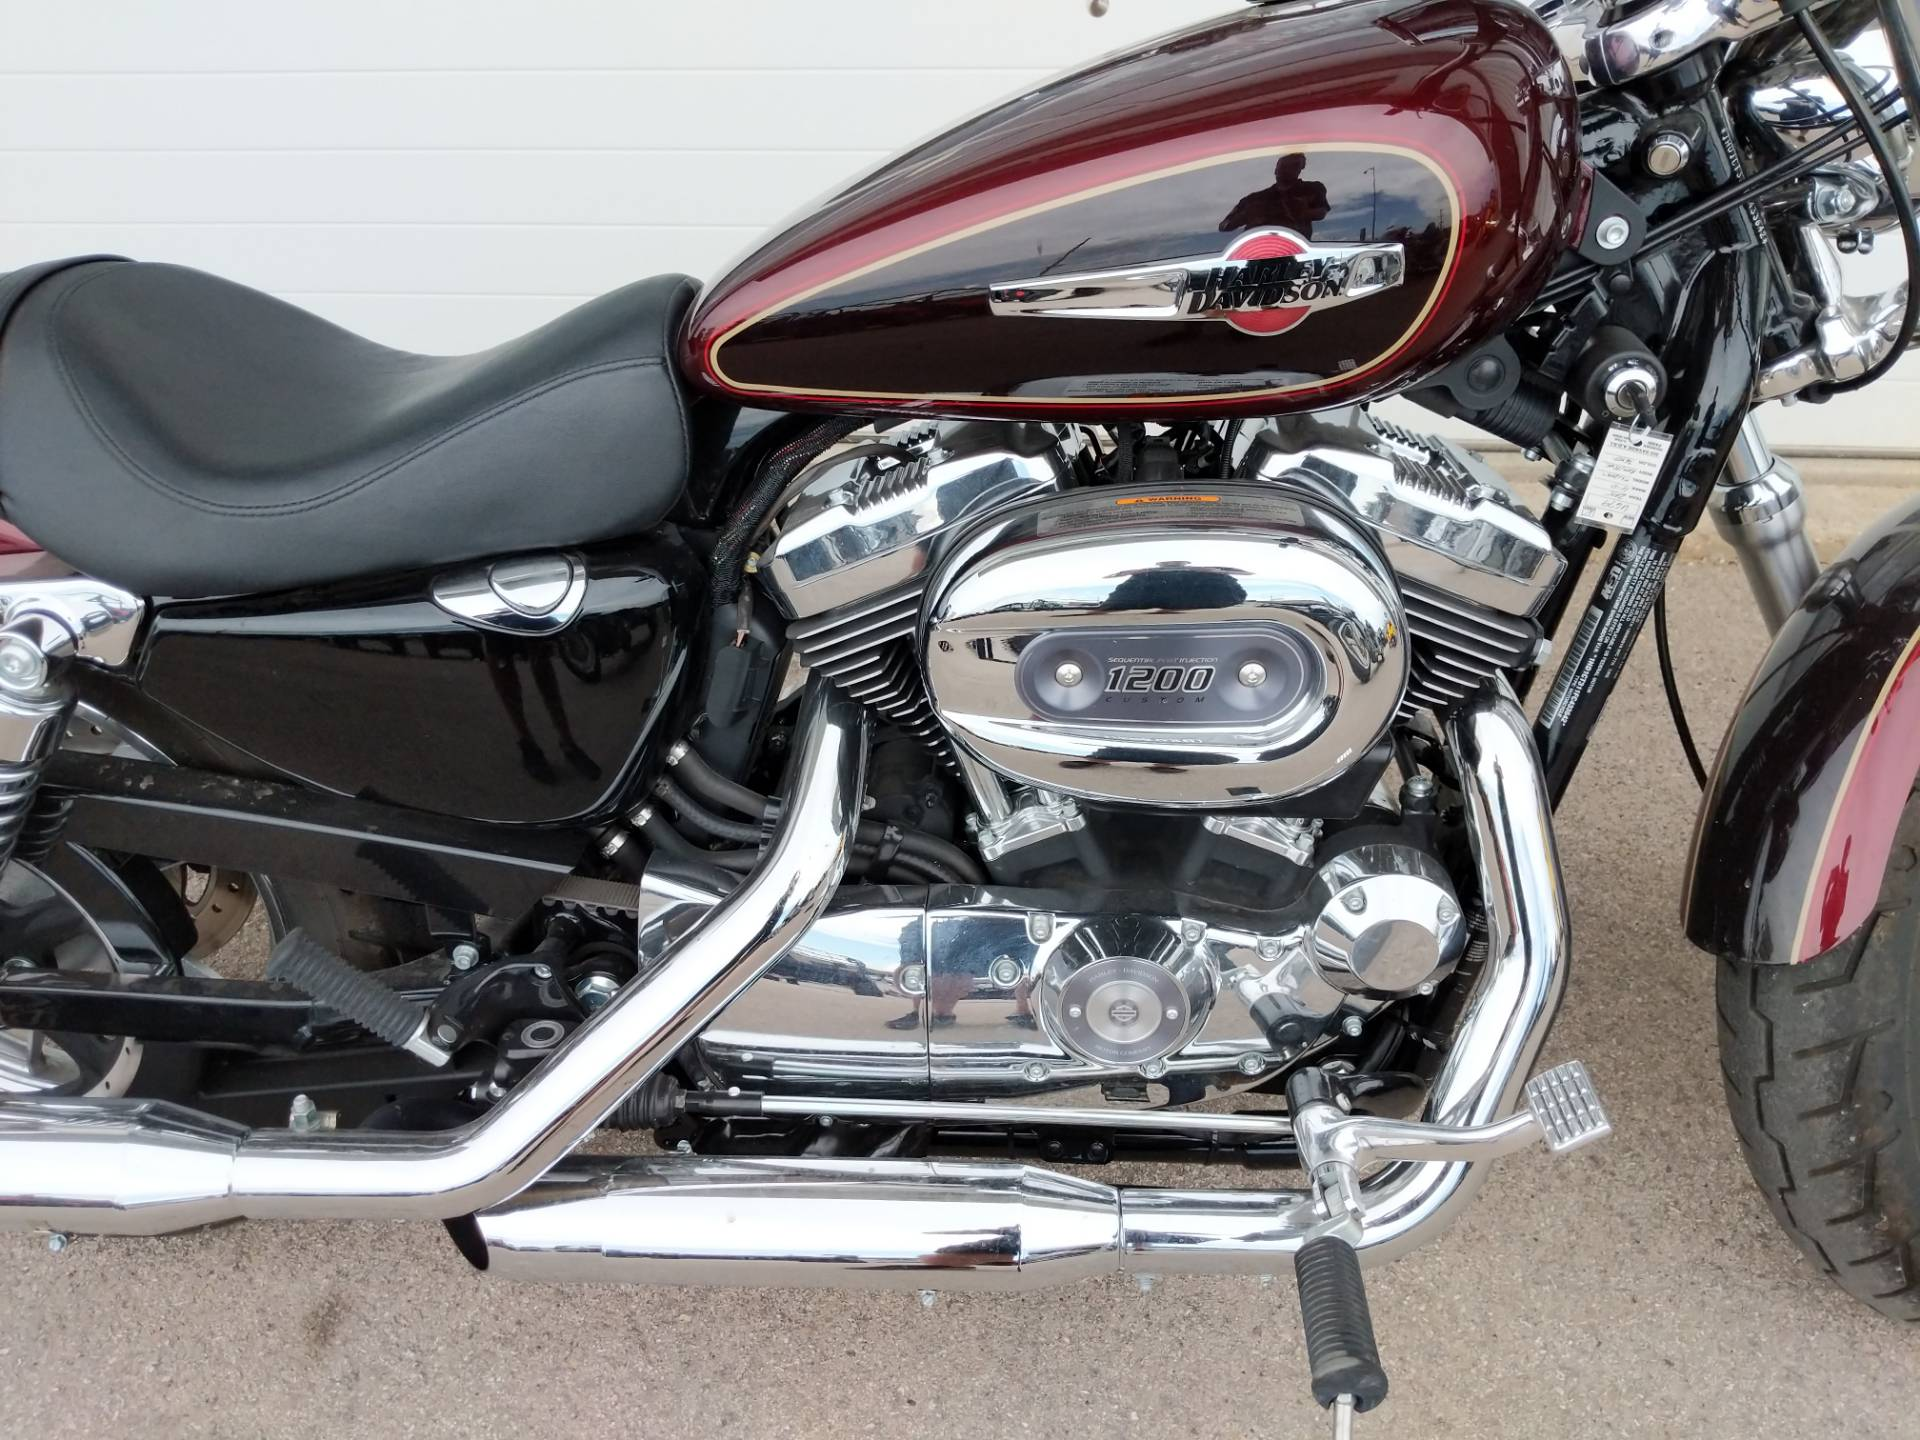 2015 Harley-Davidson 1200 Custom in Rapid City, South Dakota